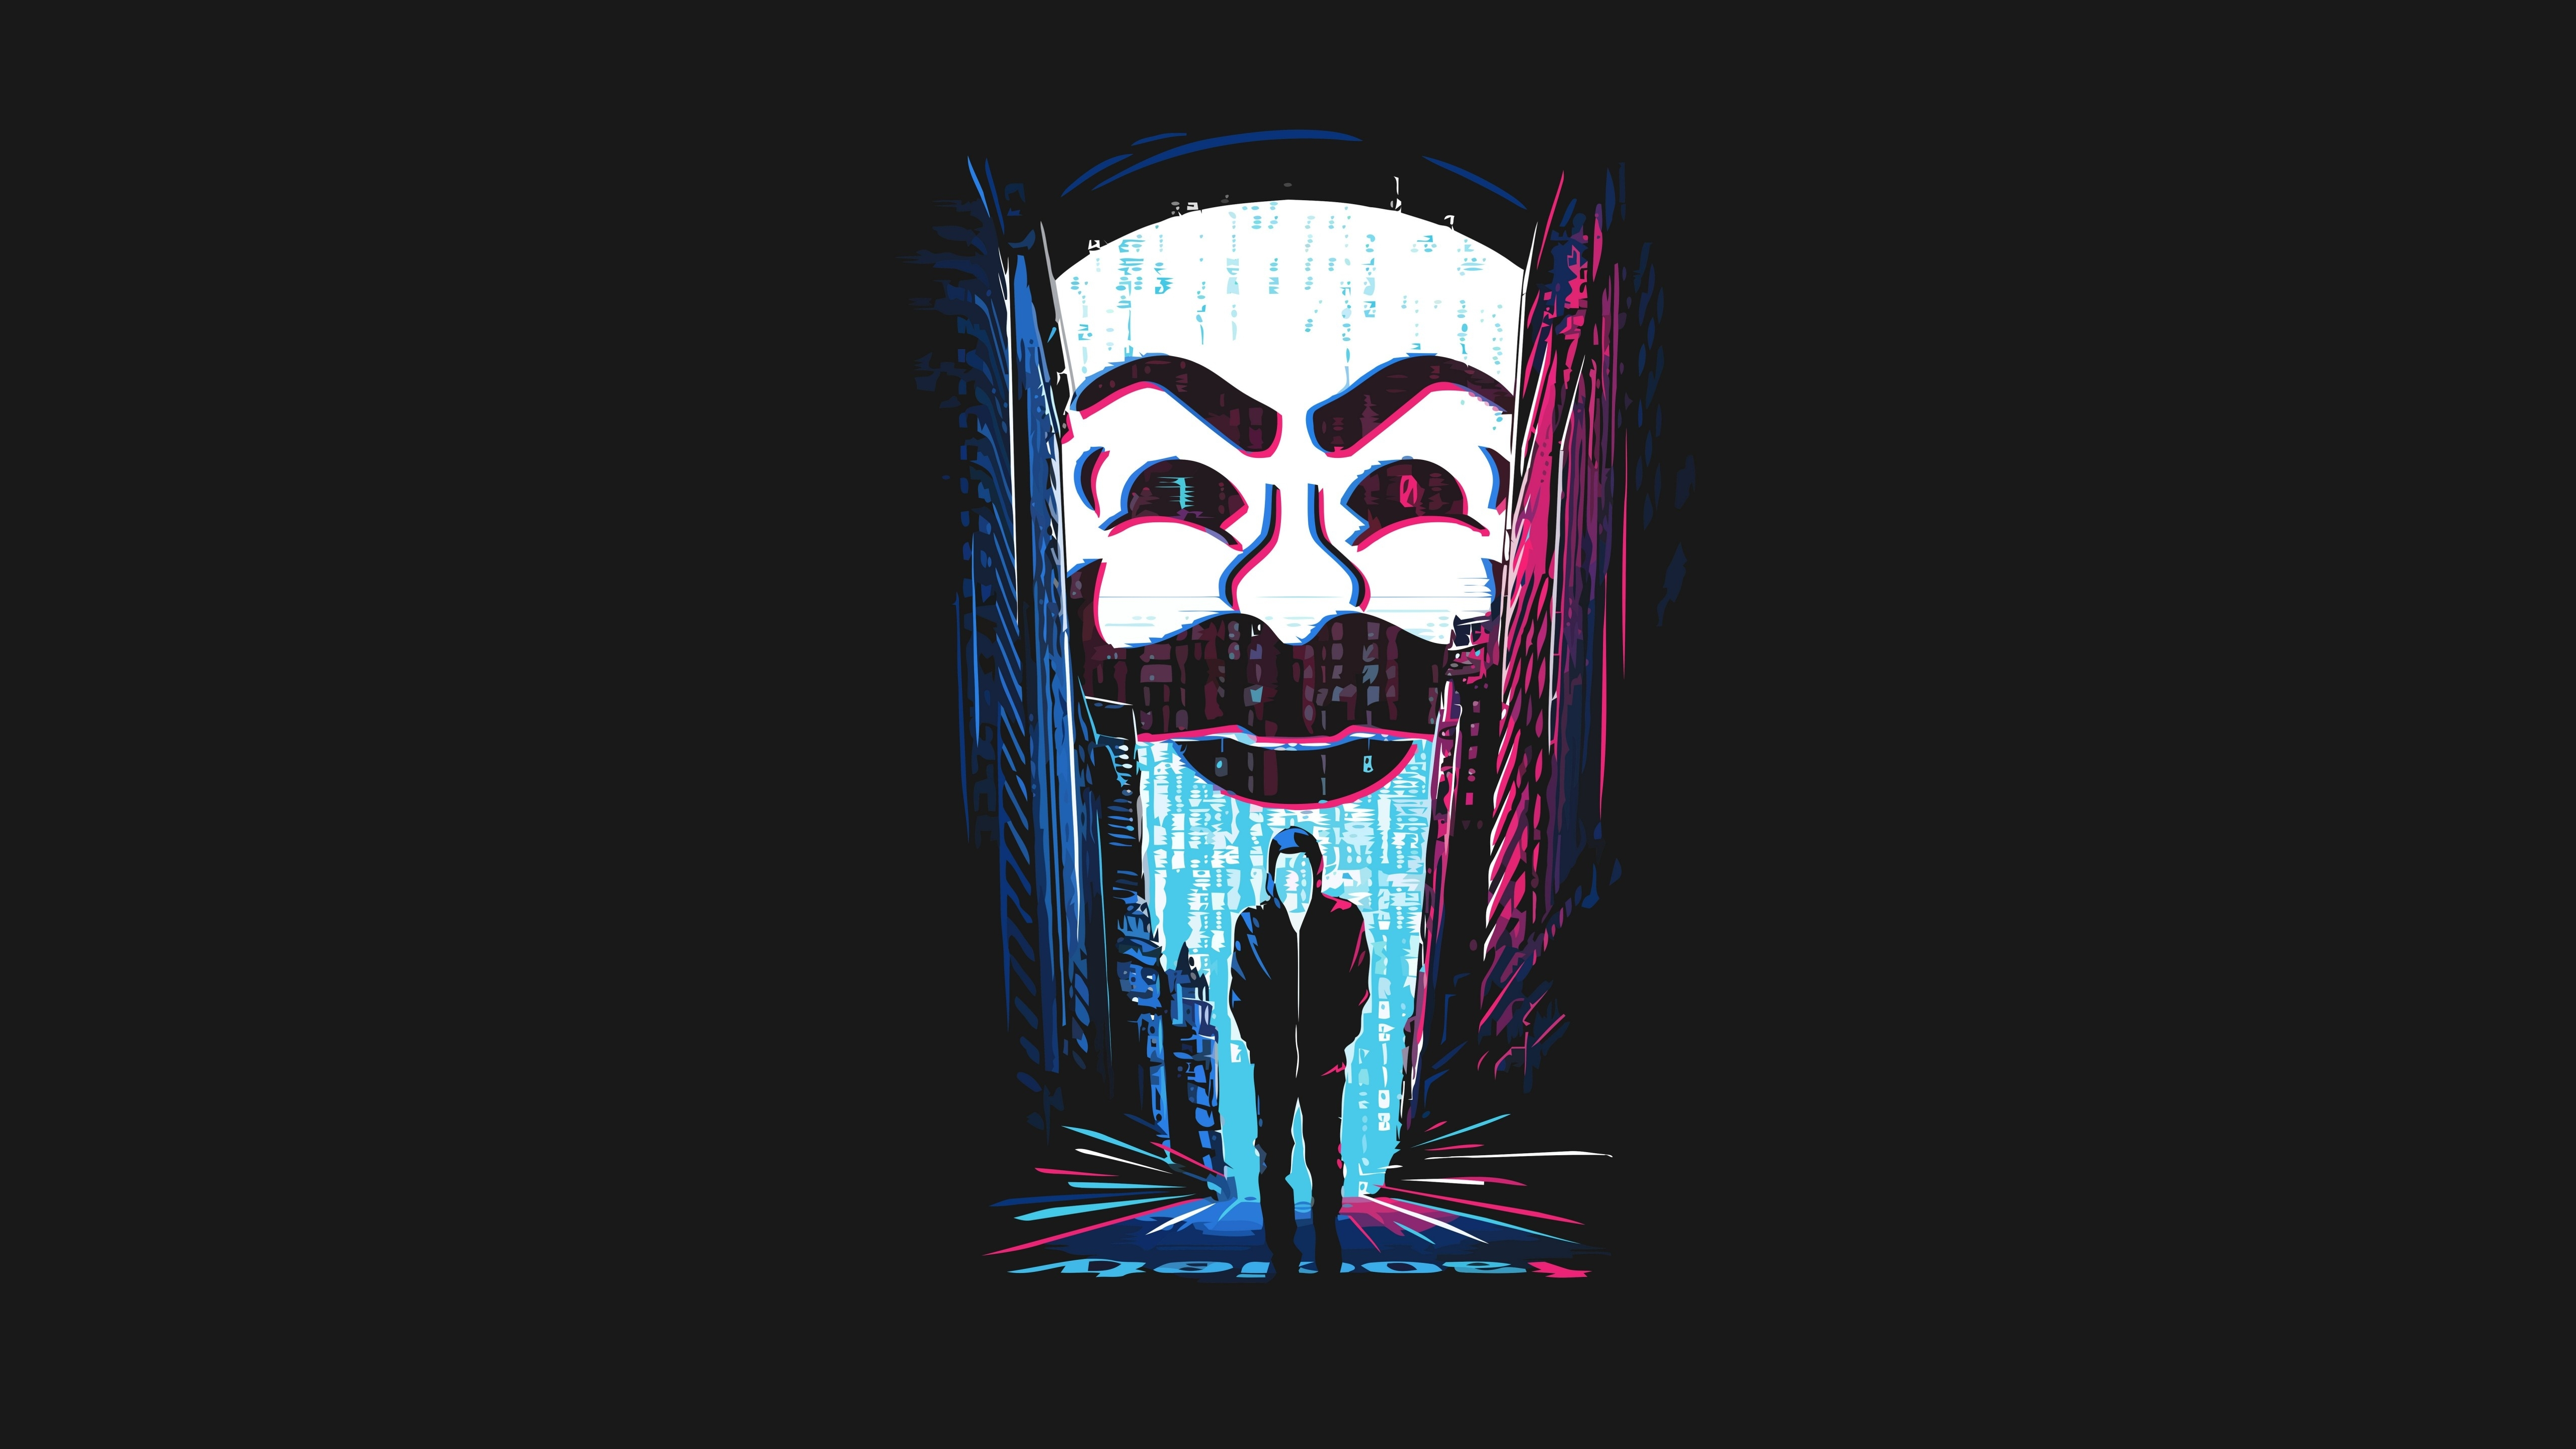 34 mr. robot fonds d'écran hd | arrière-plans - wallpaper abyss